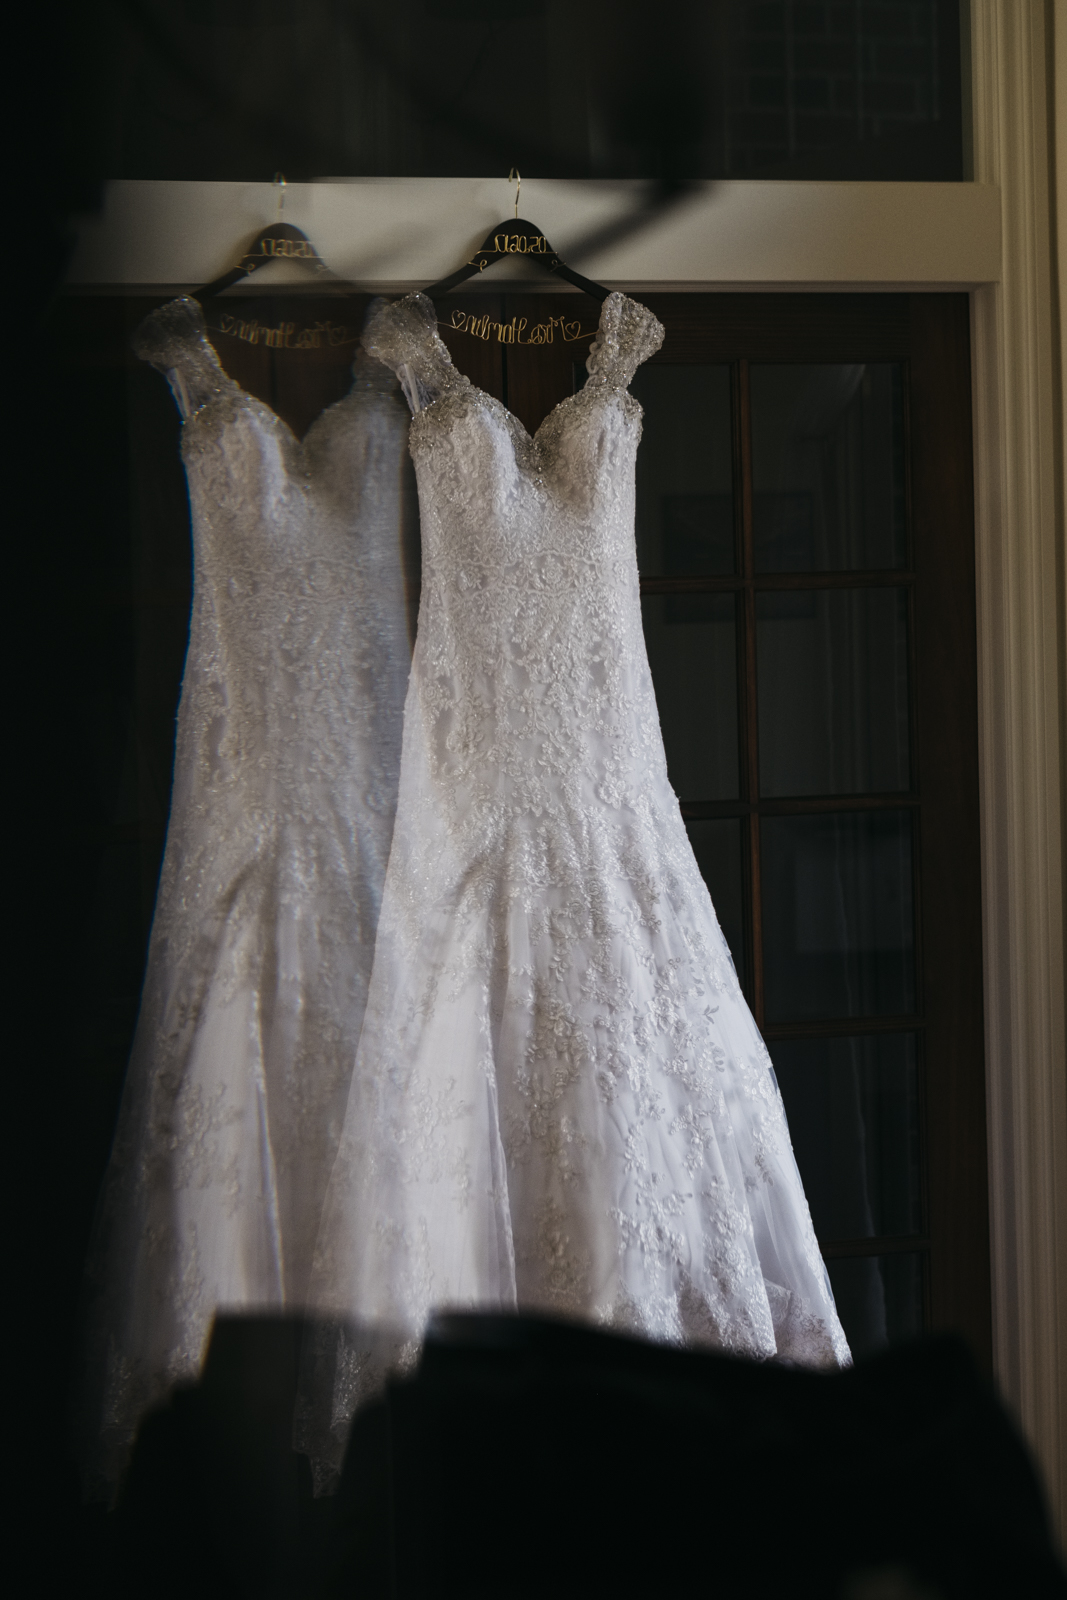 Wedding gown from Becker's Bridal in Plymouth, Michigan.